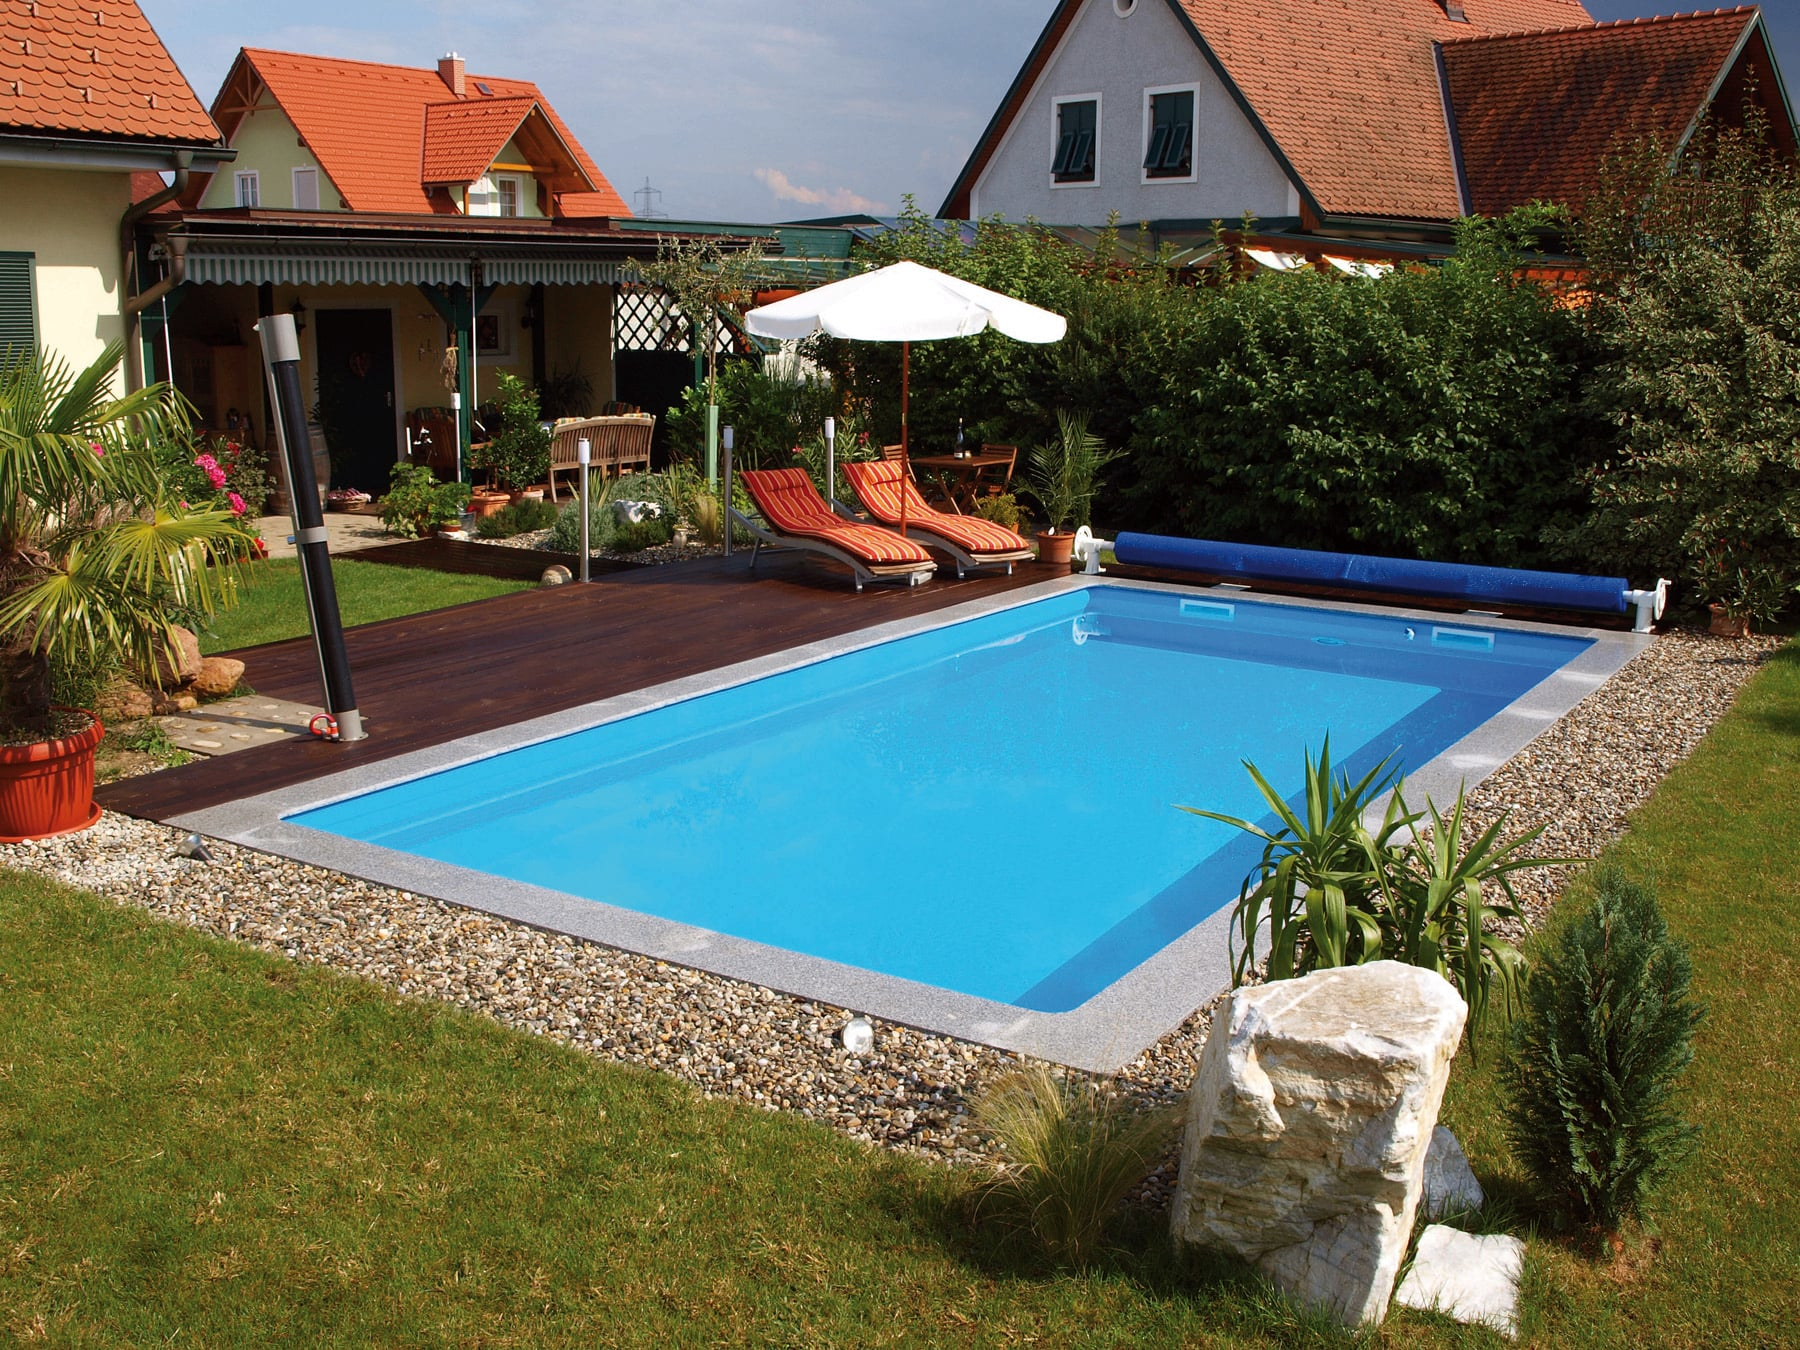 Pool Komplettset Amazon Öko Pool Komplettset Basic 700 X 350 X 150 Cm